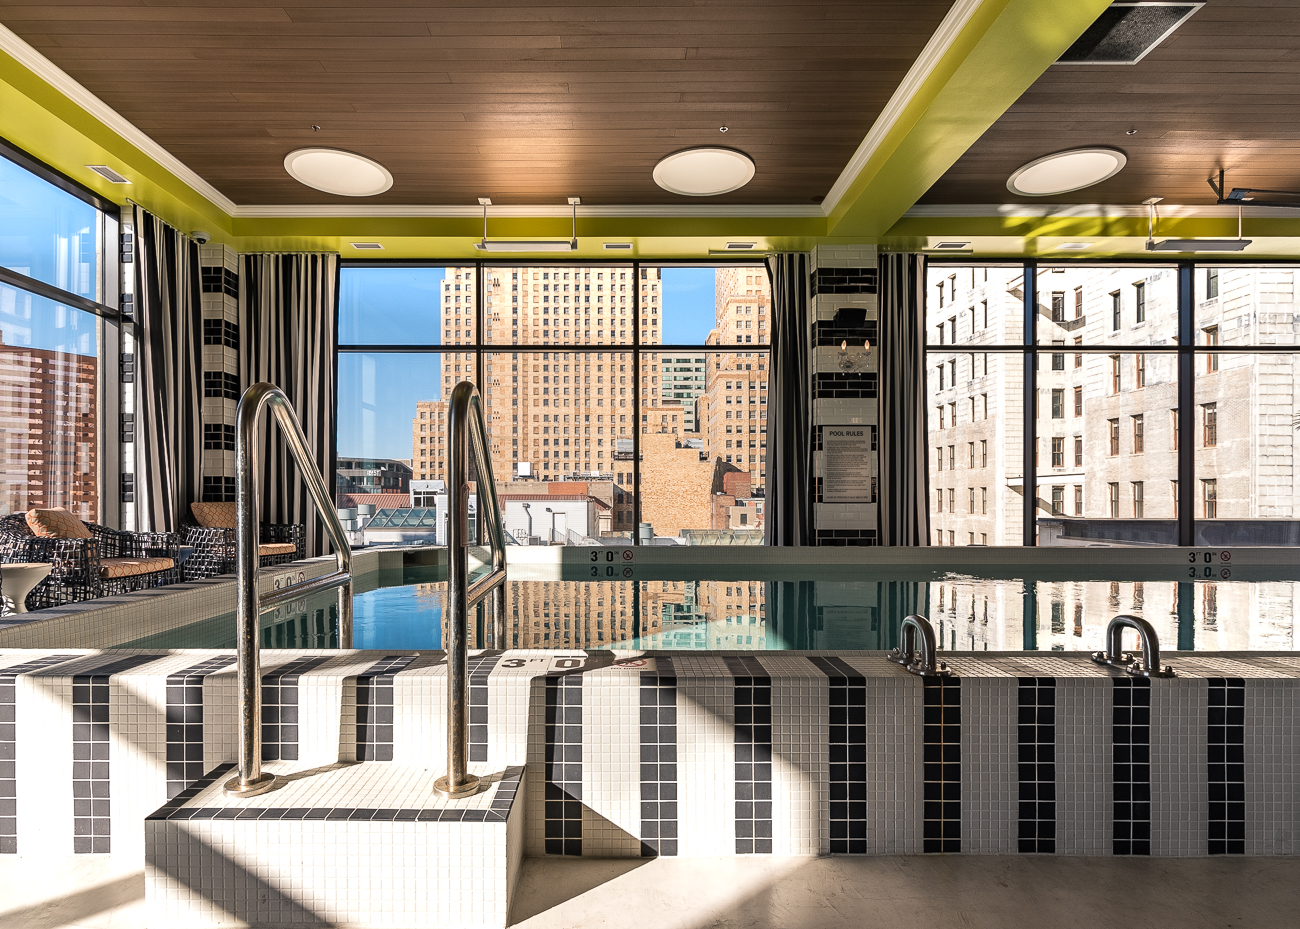 The pool sits high above street level and is temperature controlled for year-round use. A spa sits directly beside the pool. On warm days, a door can be opened and residents are able to sit outside on the deck to sunbathe. Further down the path on the deck, residents will find a convenient outdoor area for their dogs. / Image: Phil Armstrong, Cincinnati Refined // Published: 11.13.18